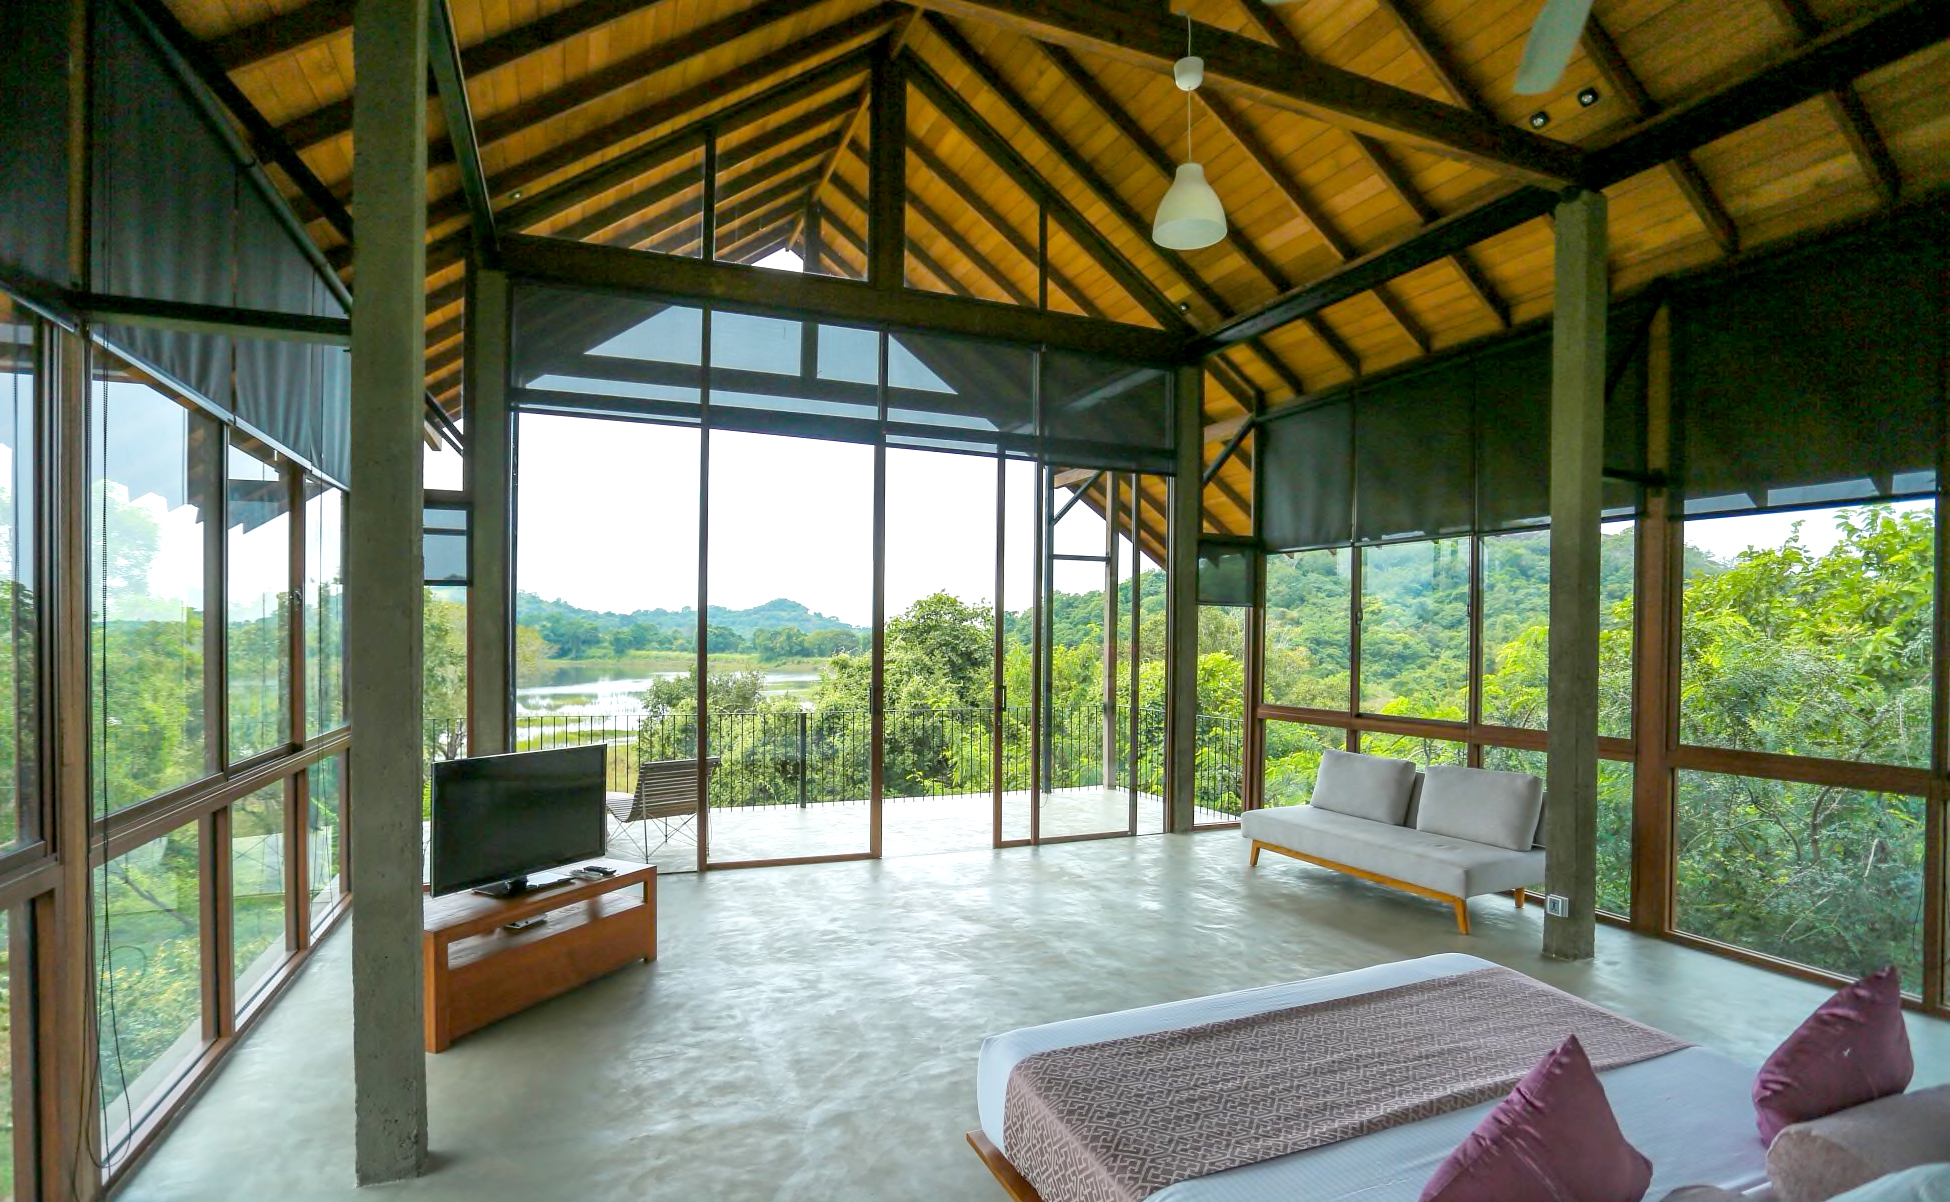 Bedroom View at Wild Grass Nature Resort